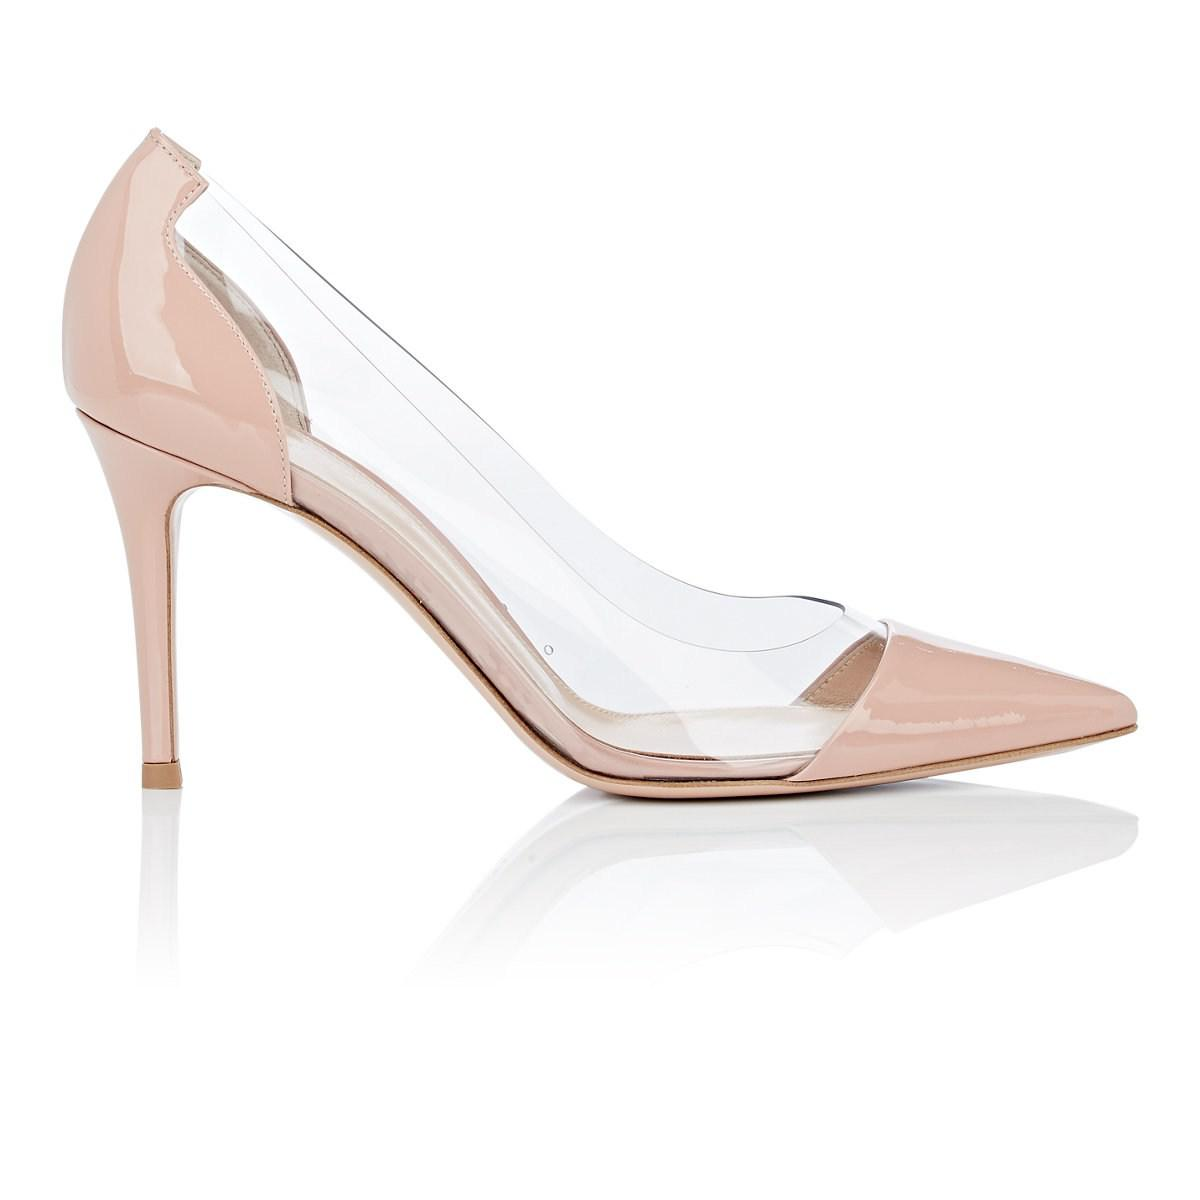 fd31a6be84fd Lyst - Gianvito Rossi Vernice Patent Leather   Pvc Pumps in Pink